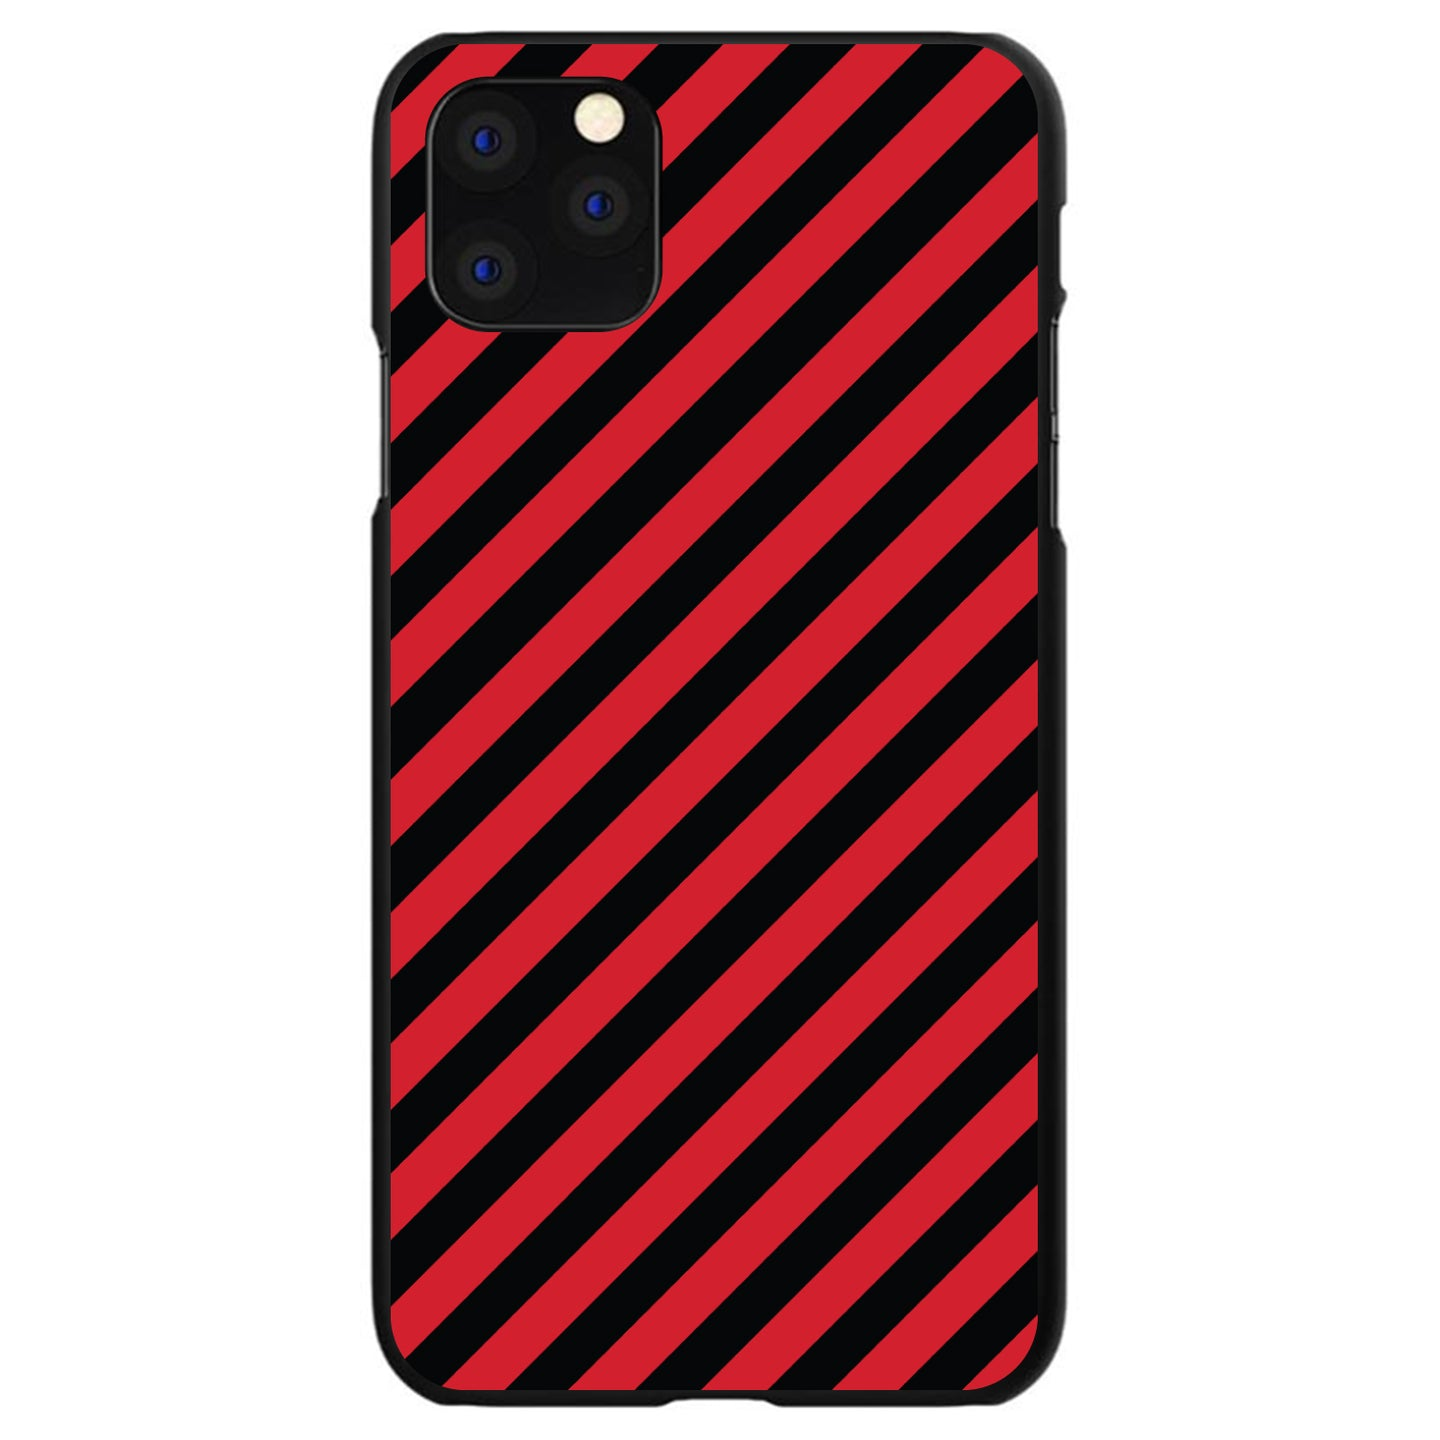 DistinctInk® Hard Plastic Snap-On Case for Apple iPhone - Black Red Diagonal Stripes